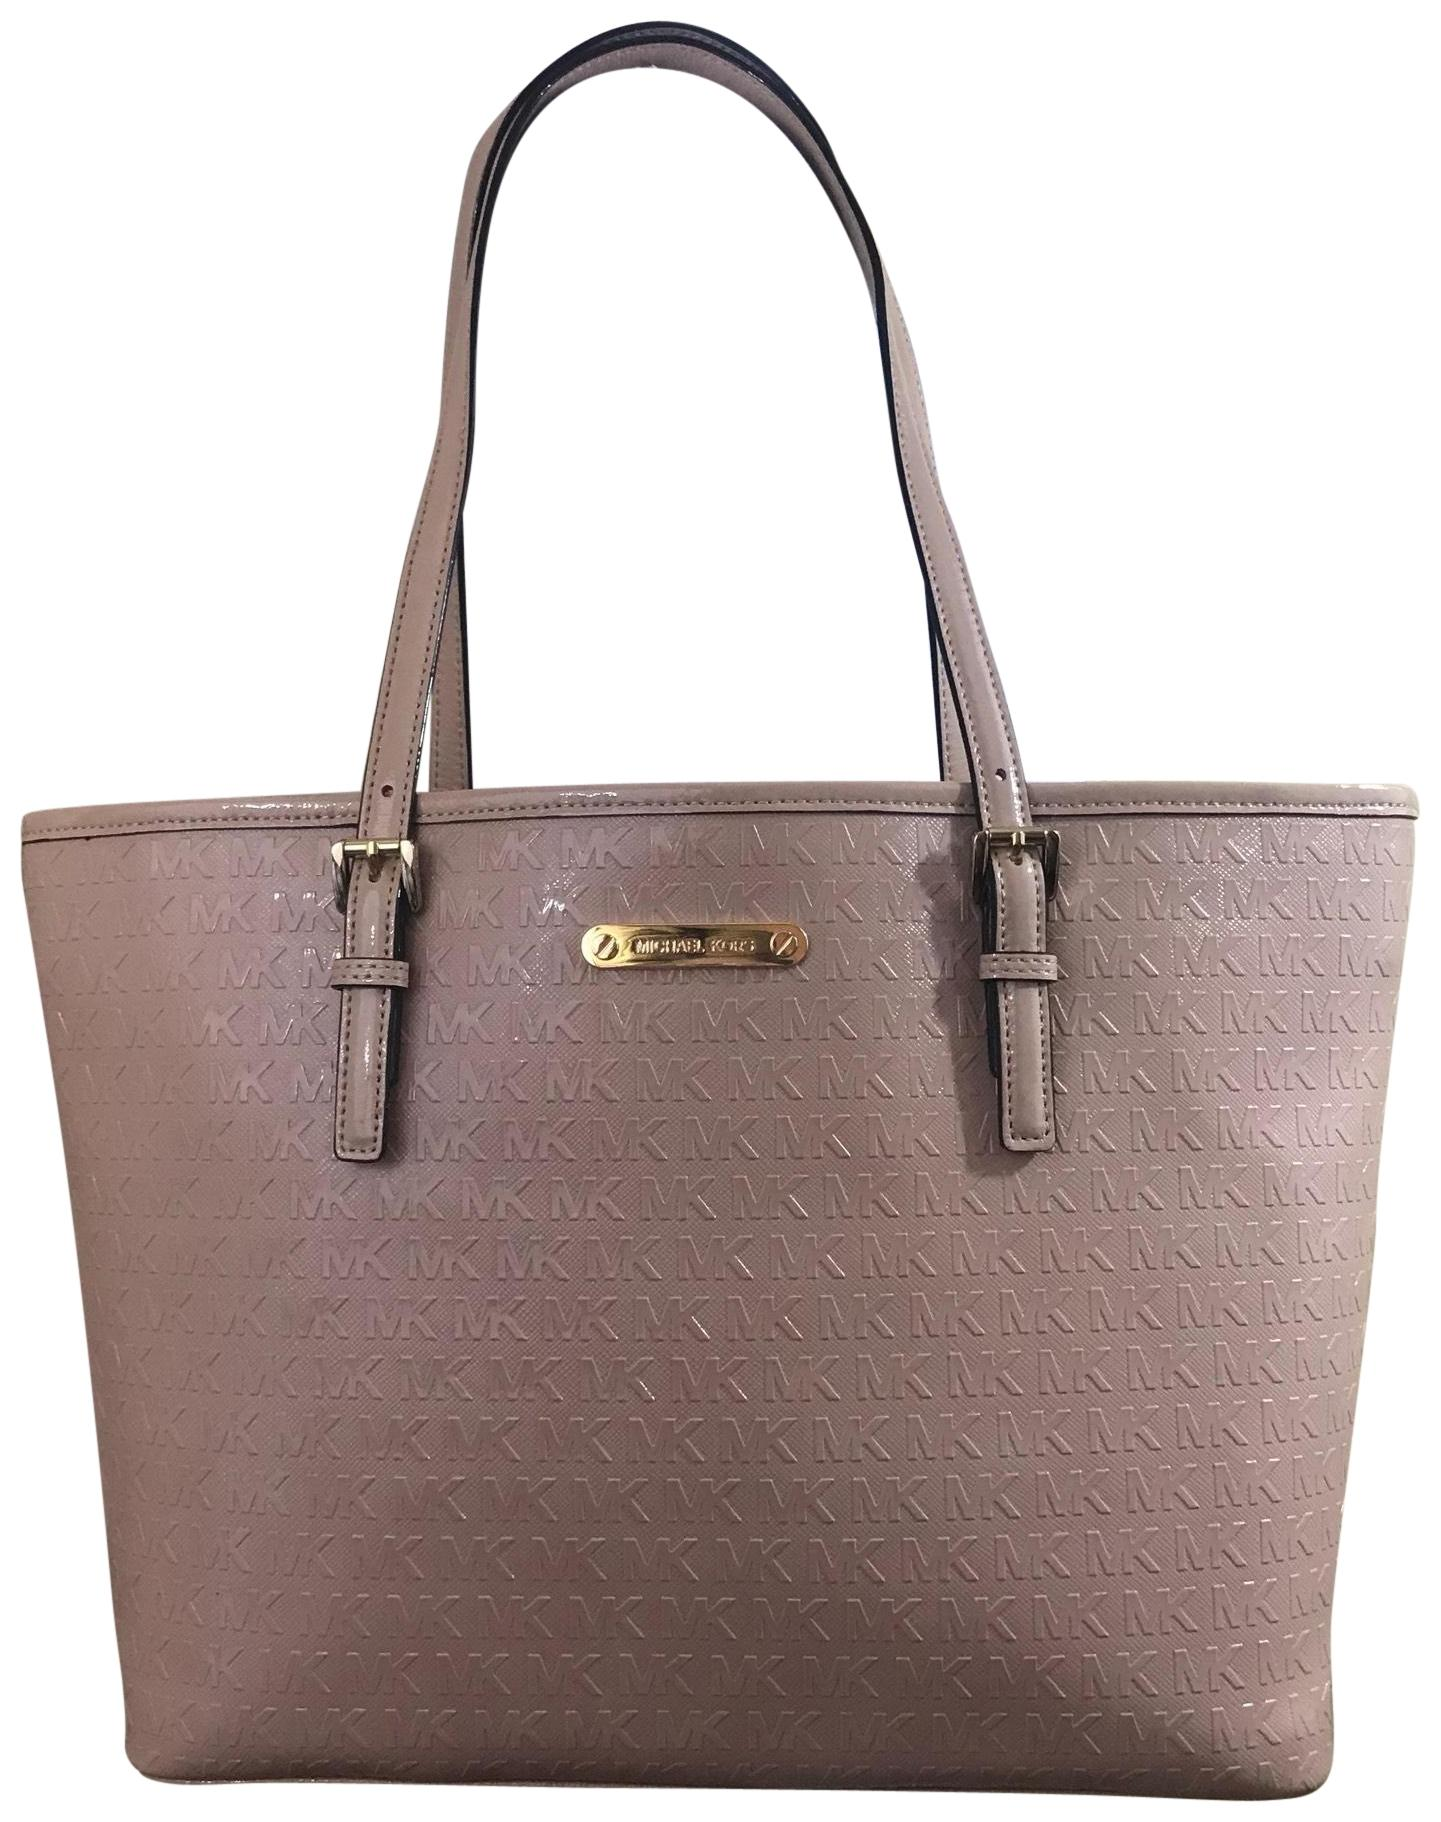 c98f63d6bcbc 9.5 0c974 ee8cf  get michael kors tote in oyster ef8e7 76514